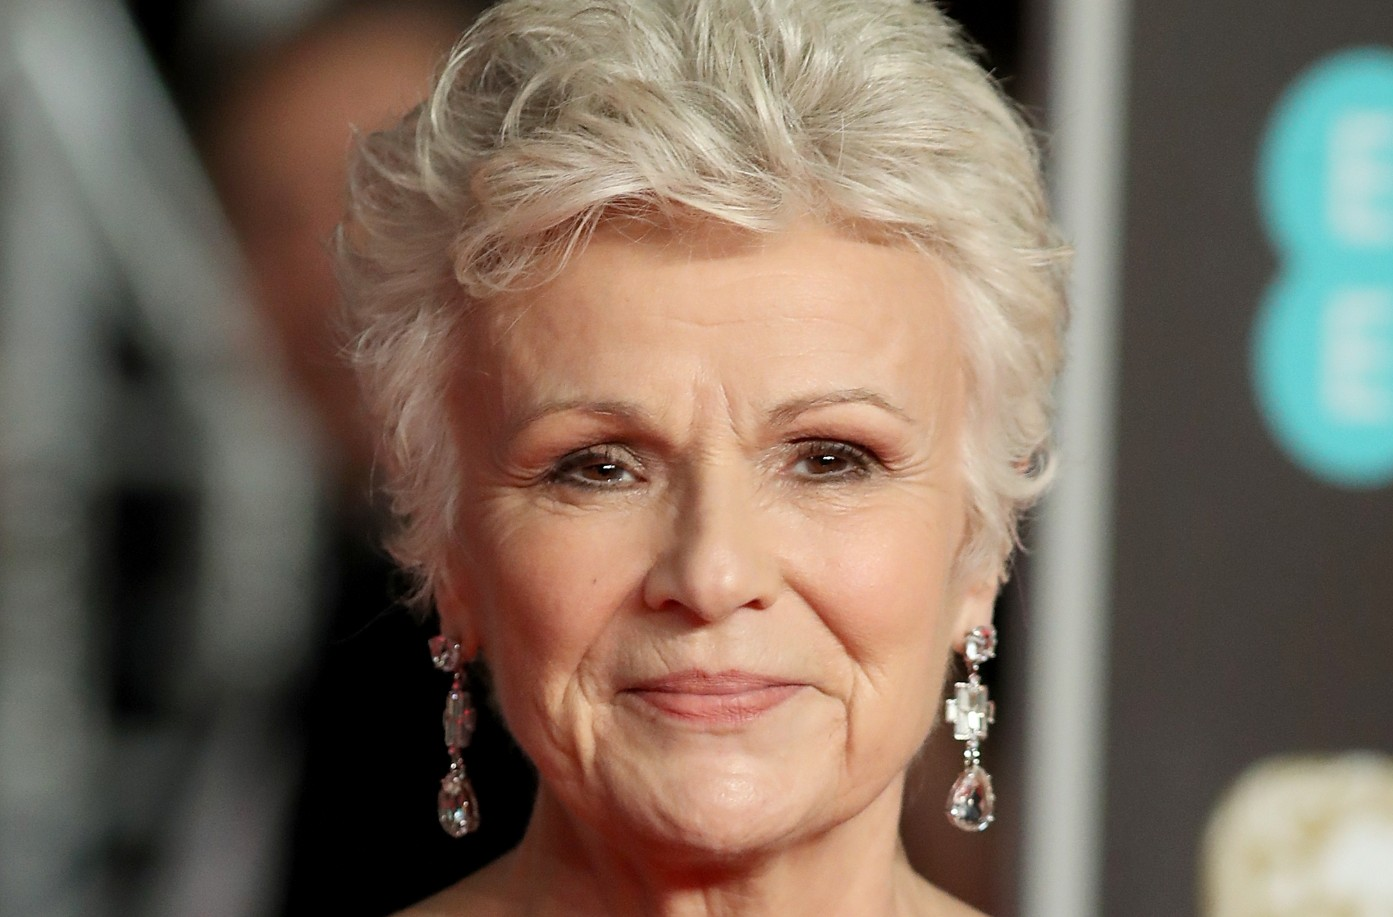 Julie Walters breaks her silence about heartbreaking cancer diagnosis